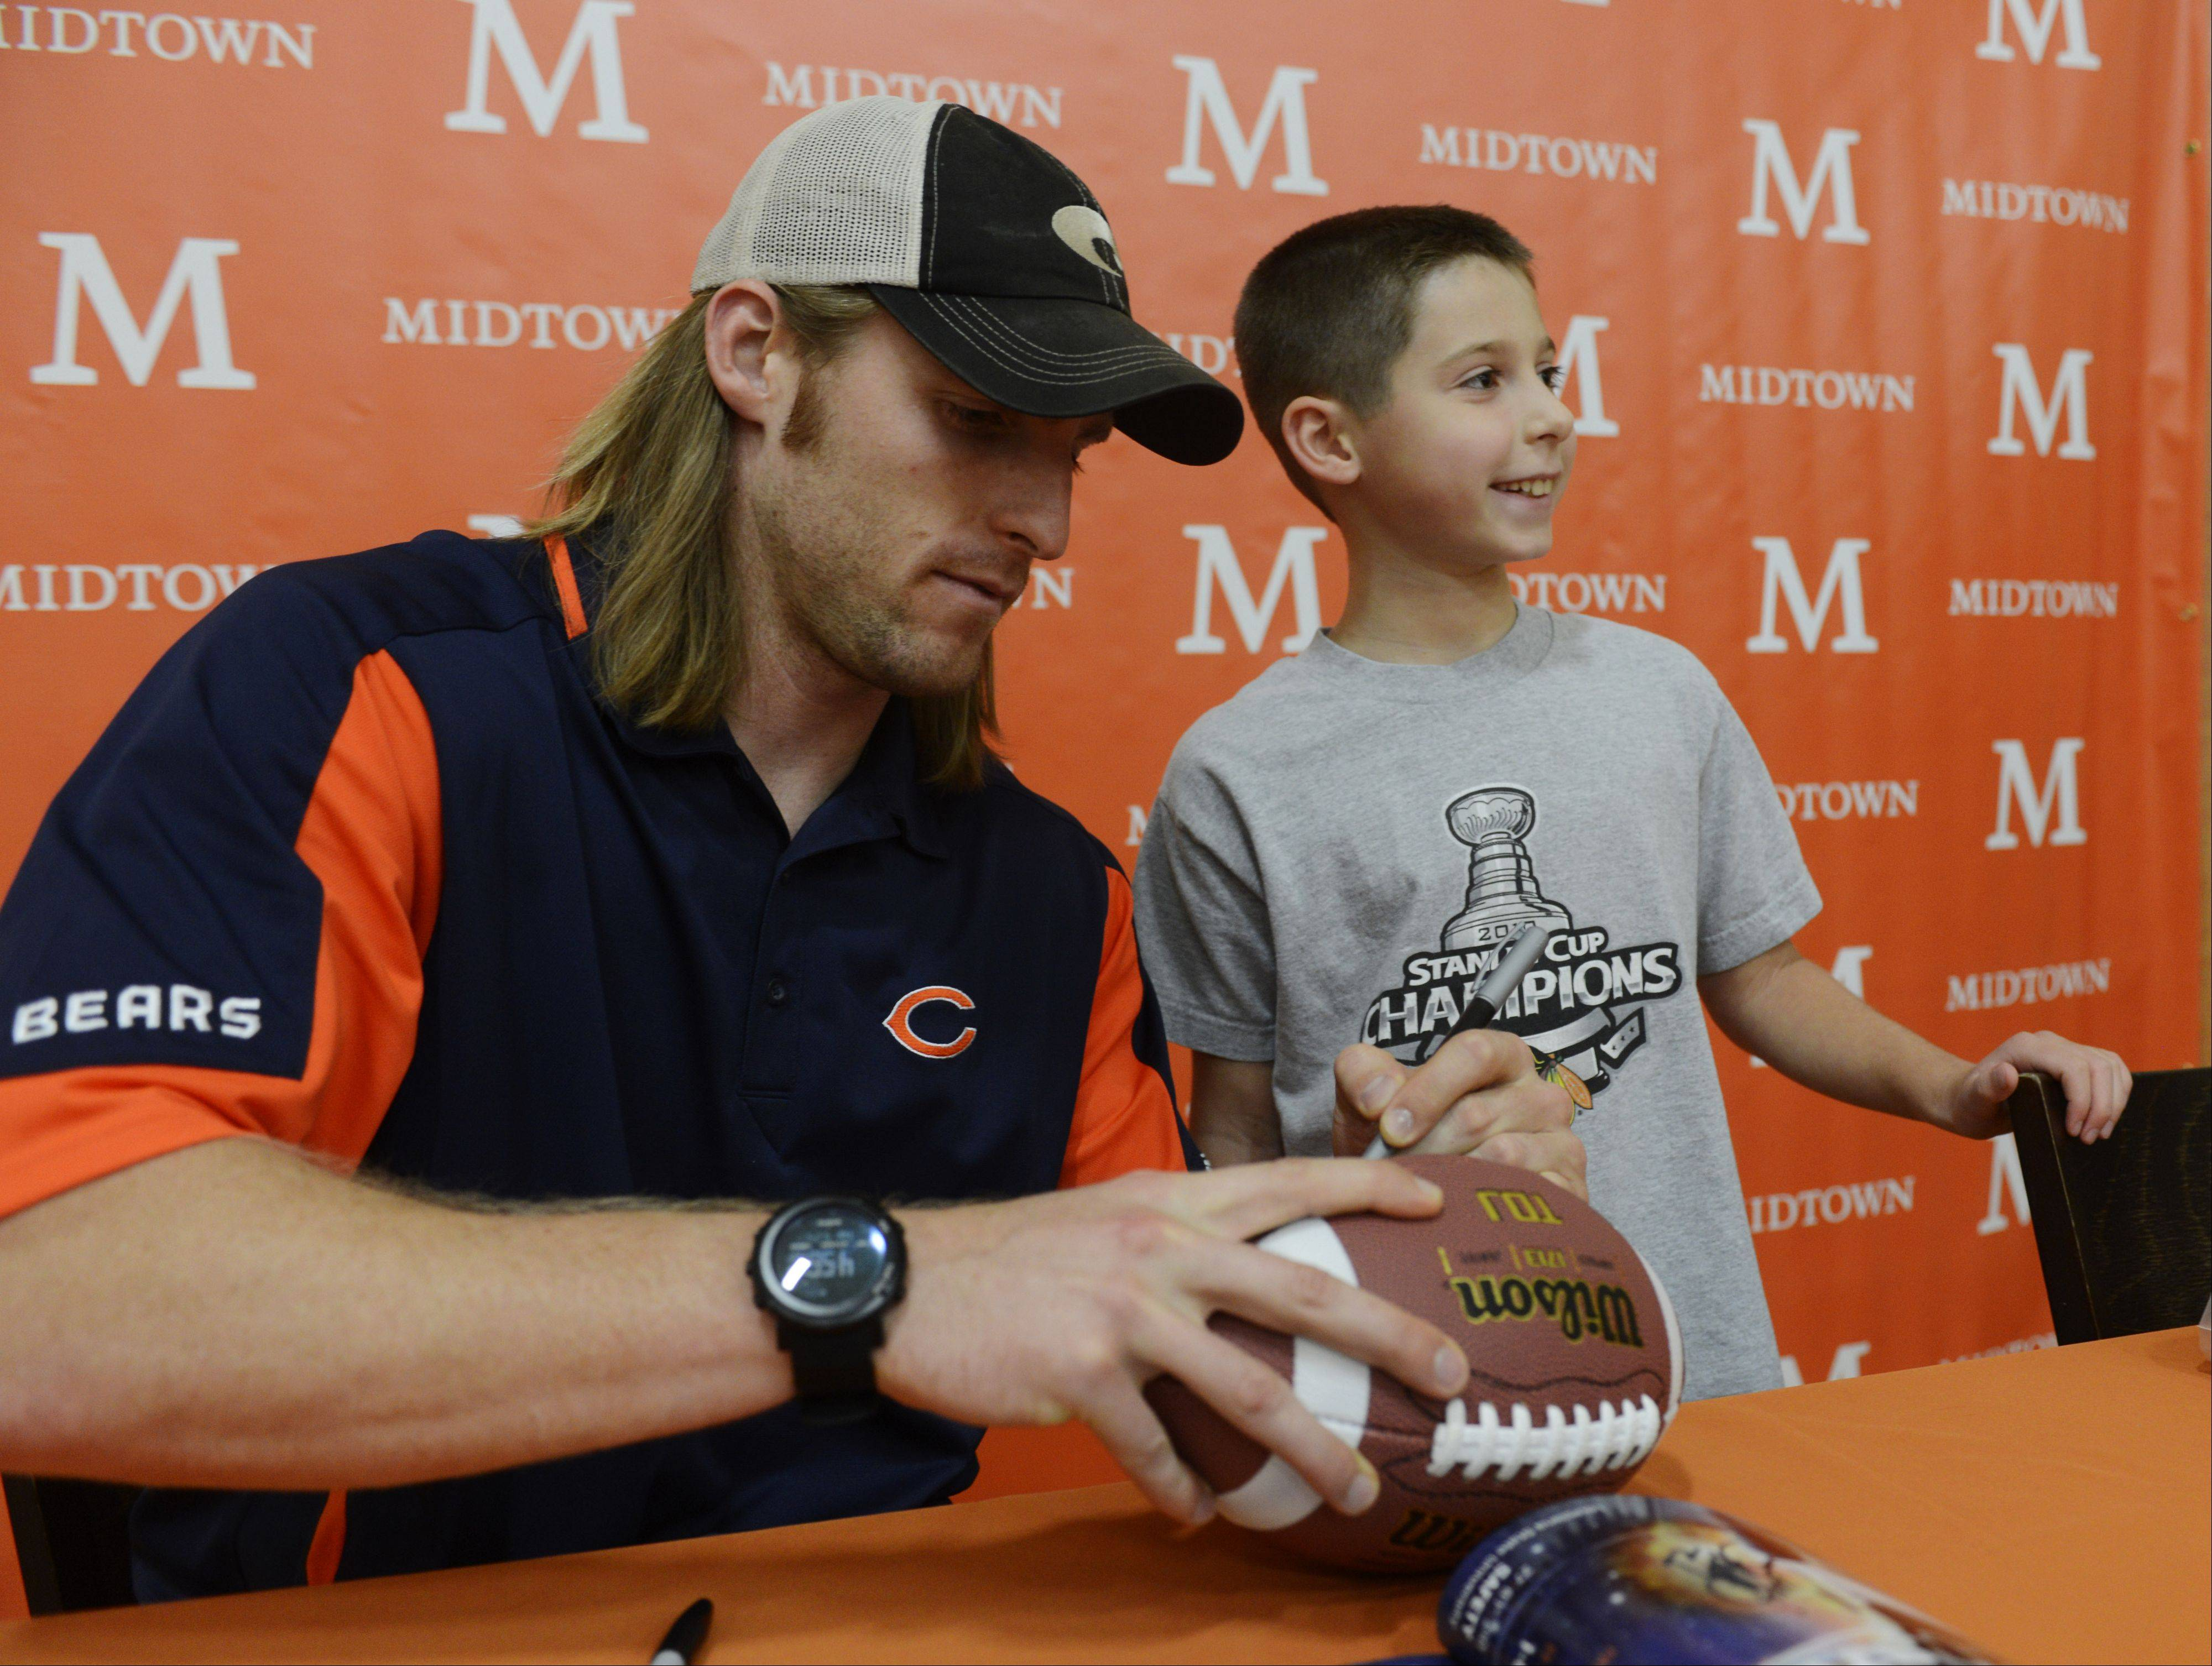 JOE LEWNARD/jlewnard@dailyherald.comChicago Bears safety Craig Steltz signs a football for Connor Nichols, 9, of Palatine during a fitness event Tuesday for children at the Midtown Athletic Club in Palatine Tuesday. The event served as a kickoff to Saturday's Midtown 5K Run & Walk to benefit Bears Care.